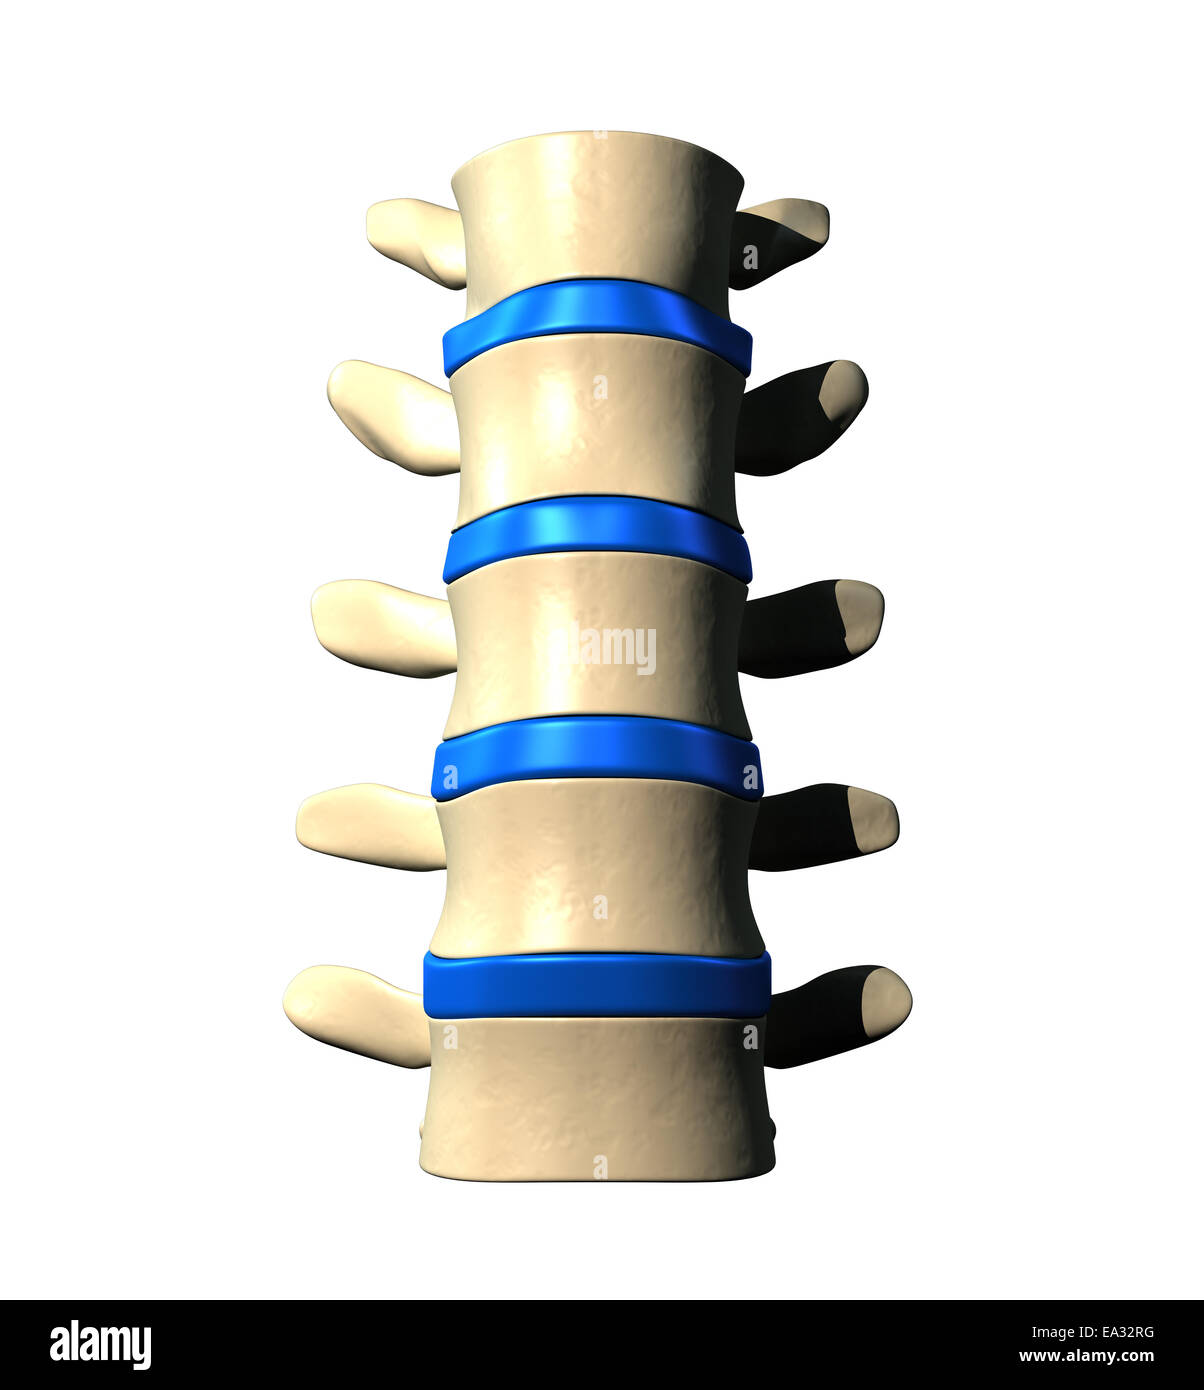 Lumbar Spine - Anterior view / Front view - Stock Image